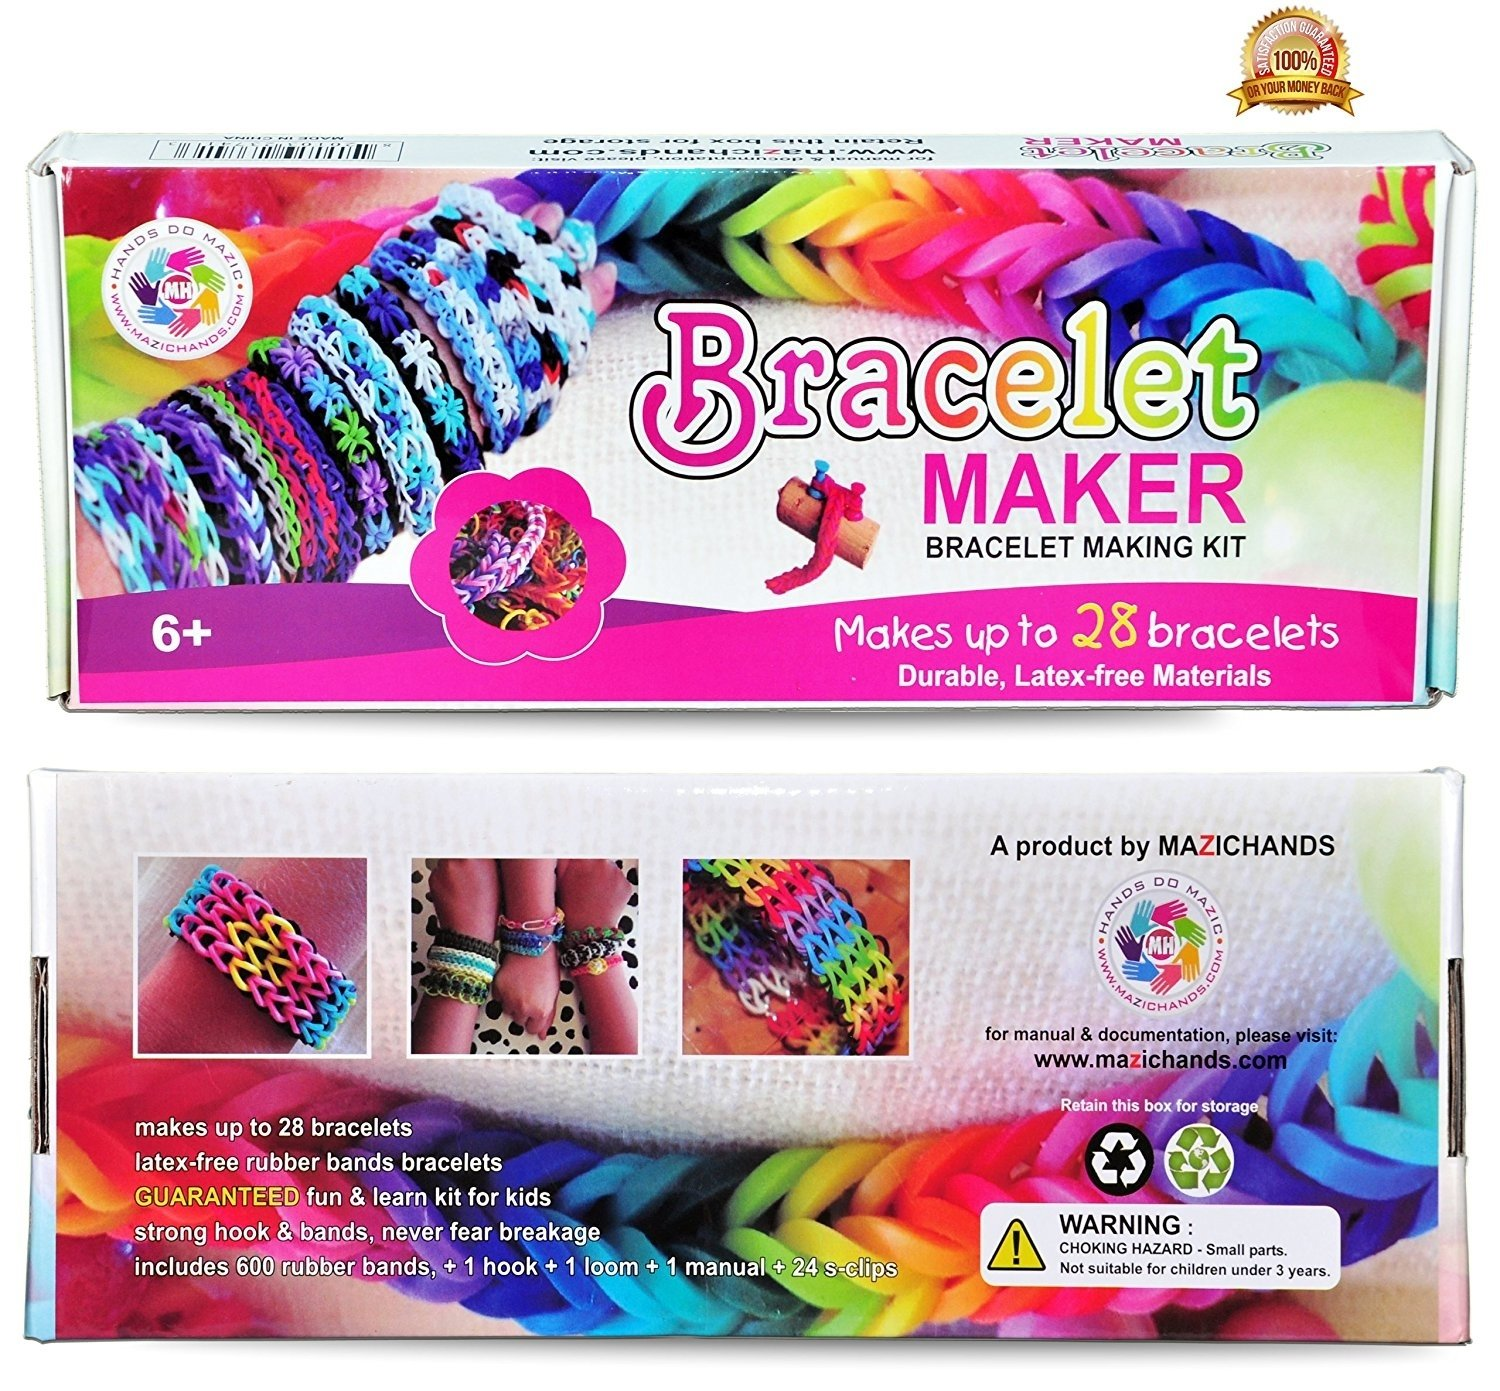 10 Wonderful Gift Ideas For 8 Year Old Girls themes birthday best toys for 6 yr old girl 2017 together with 6 2021